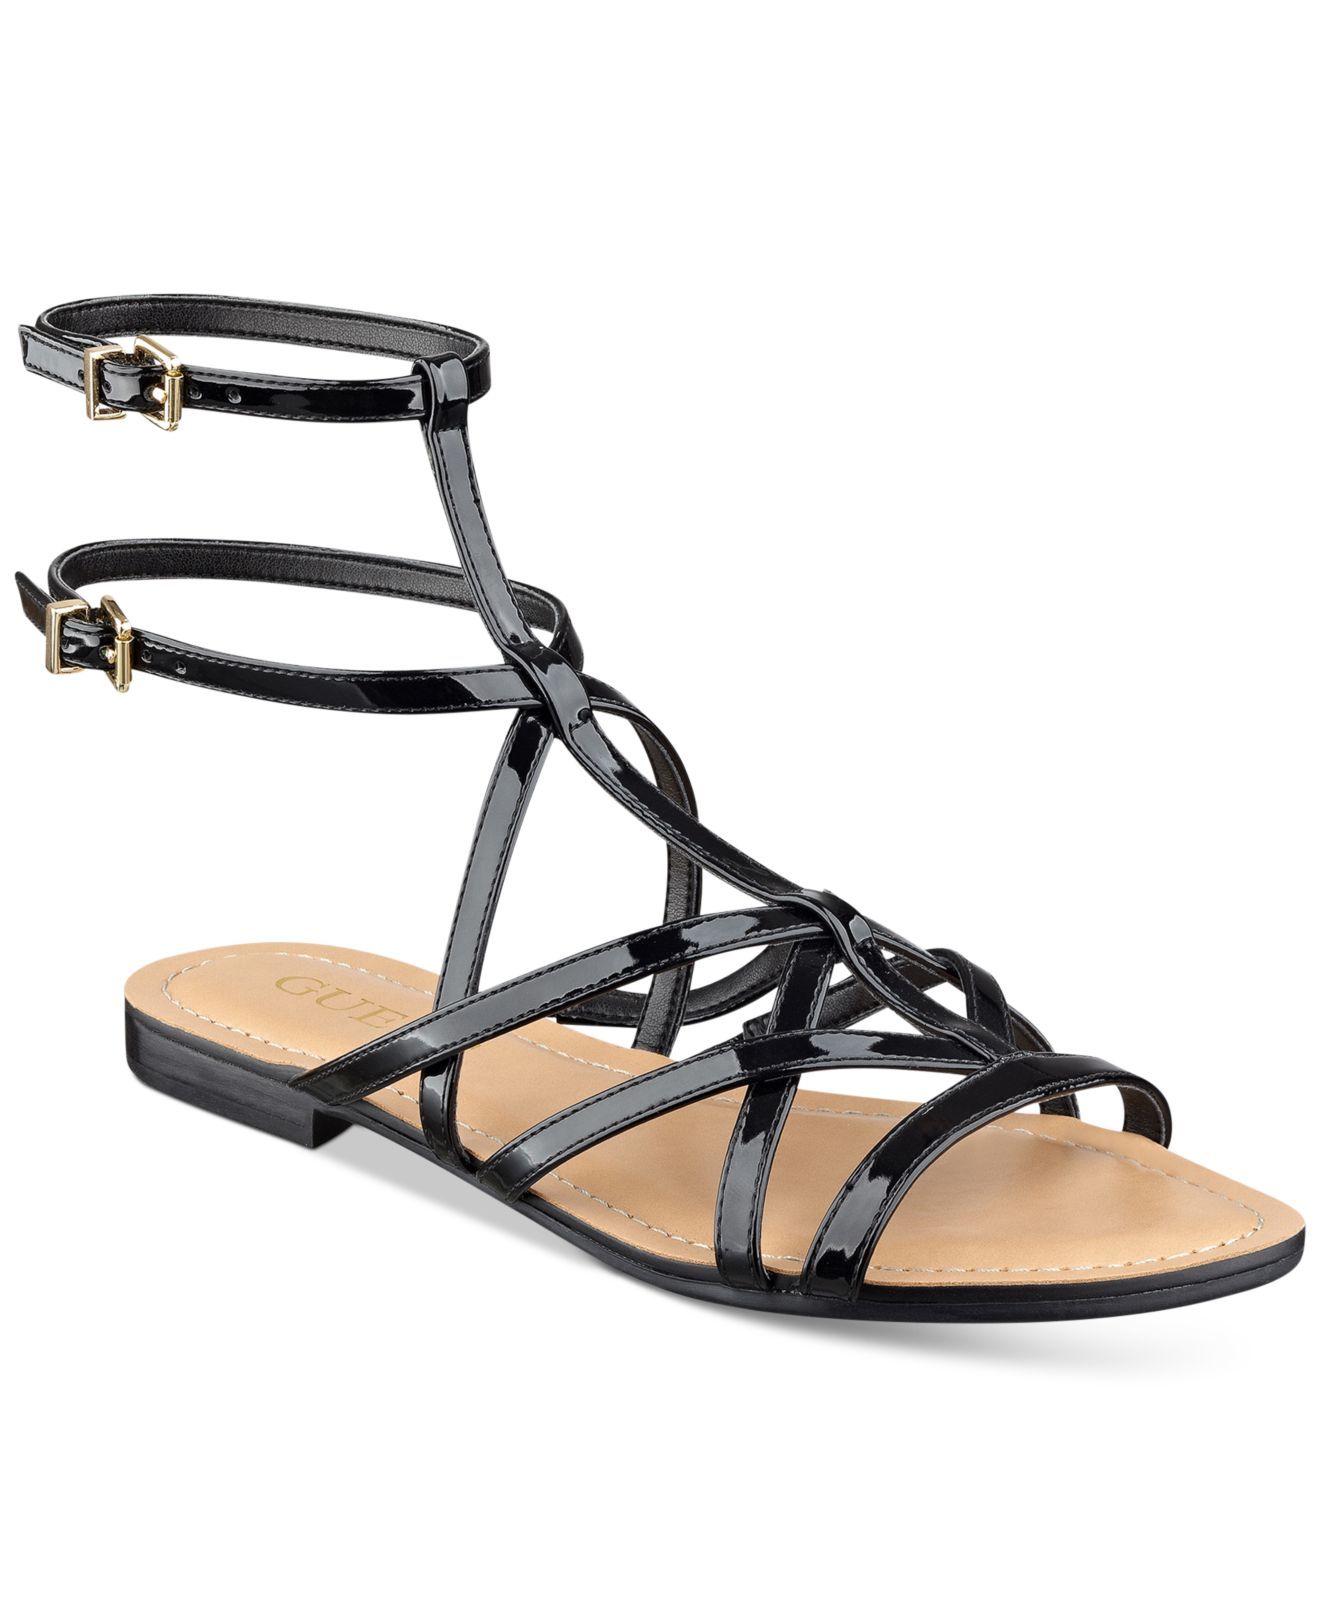 ON THE GO Flat Loafer Shoes - Black Patent Strappy Sandals Cleated Platforms Peep Toes High Heels.